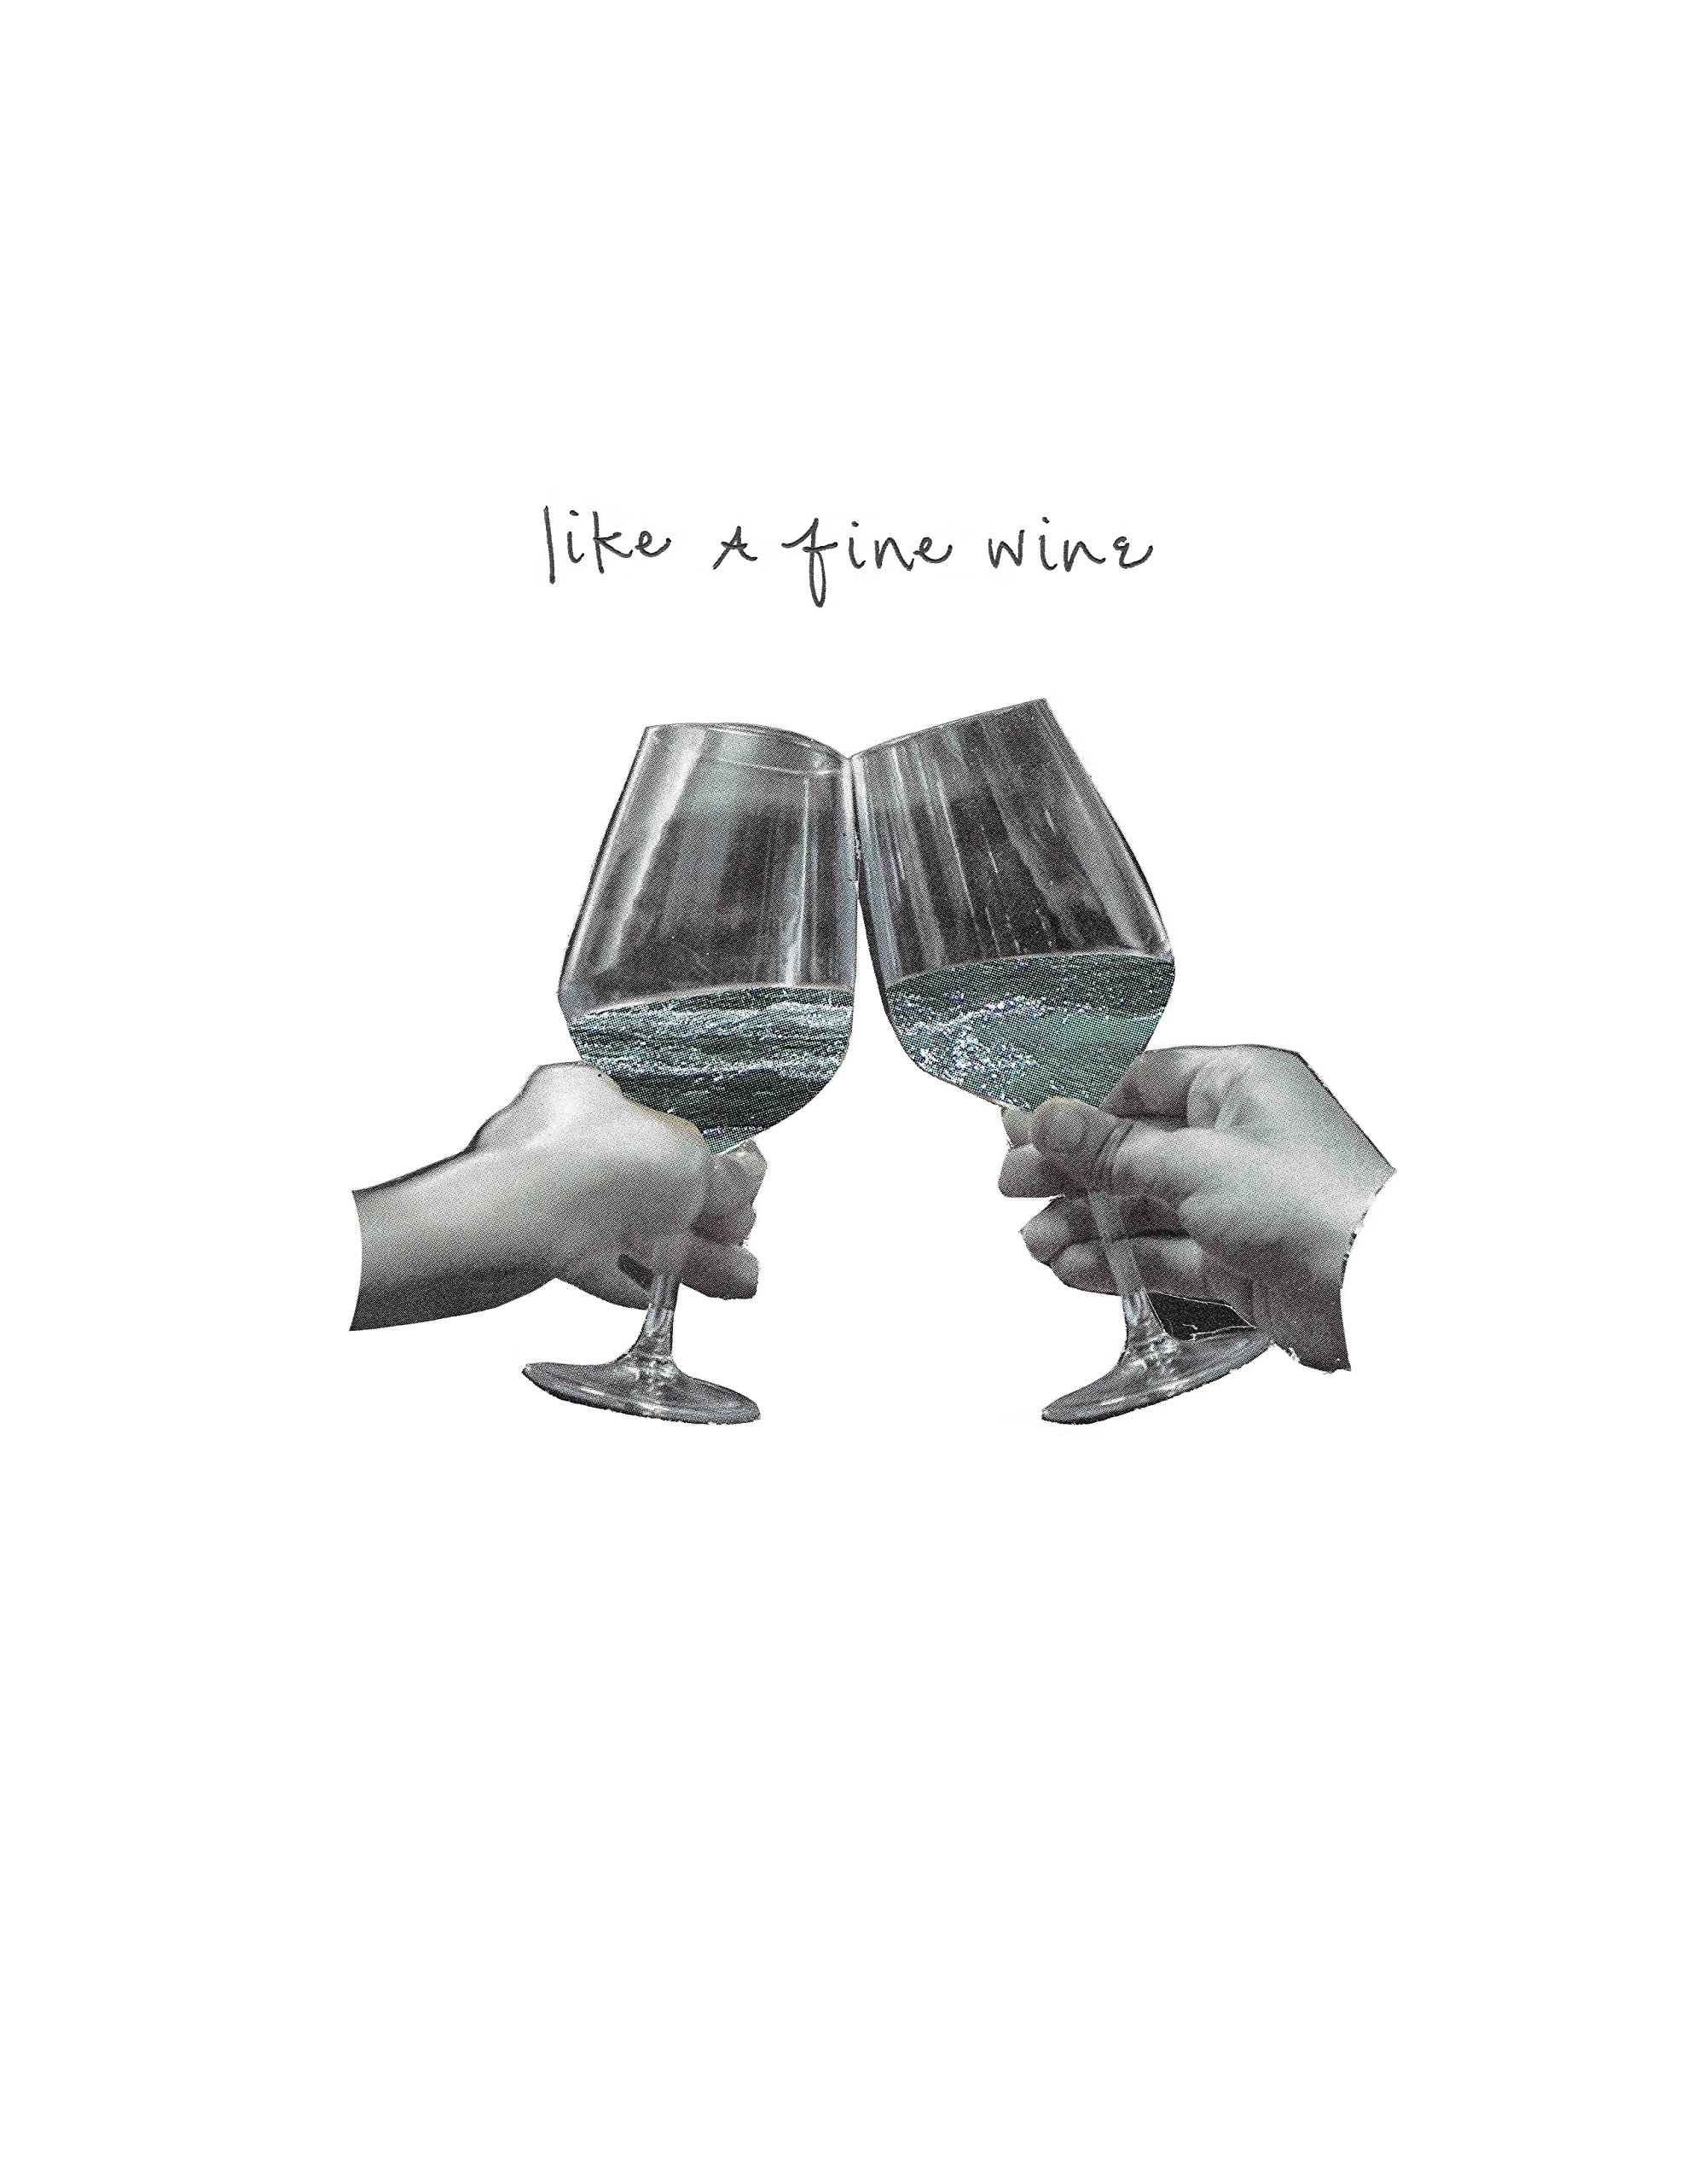 Away Laughing Paperworks Fine Wine Blank Card 4.25'' x 5.5'', Set of 6